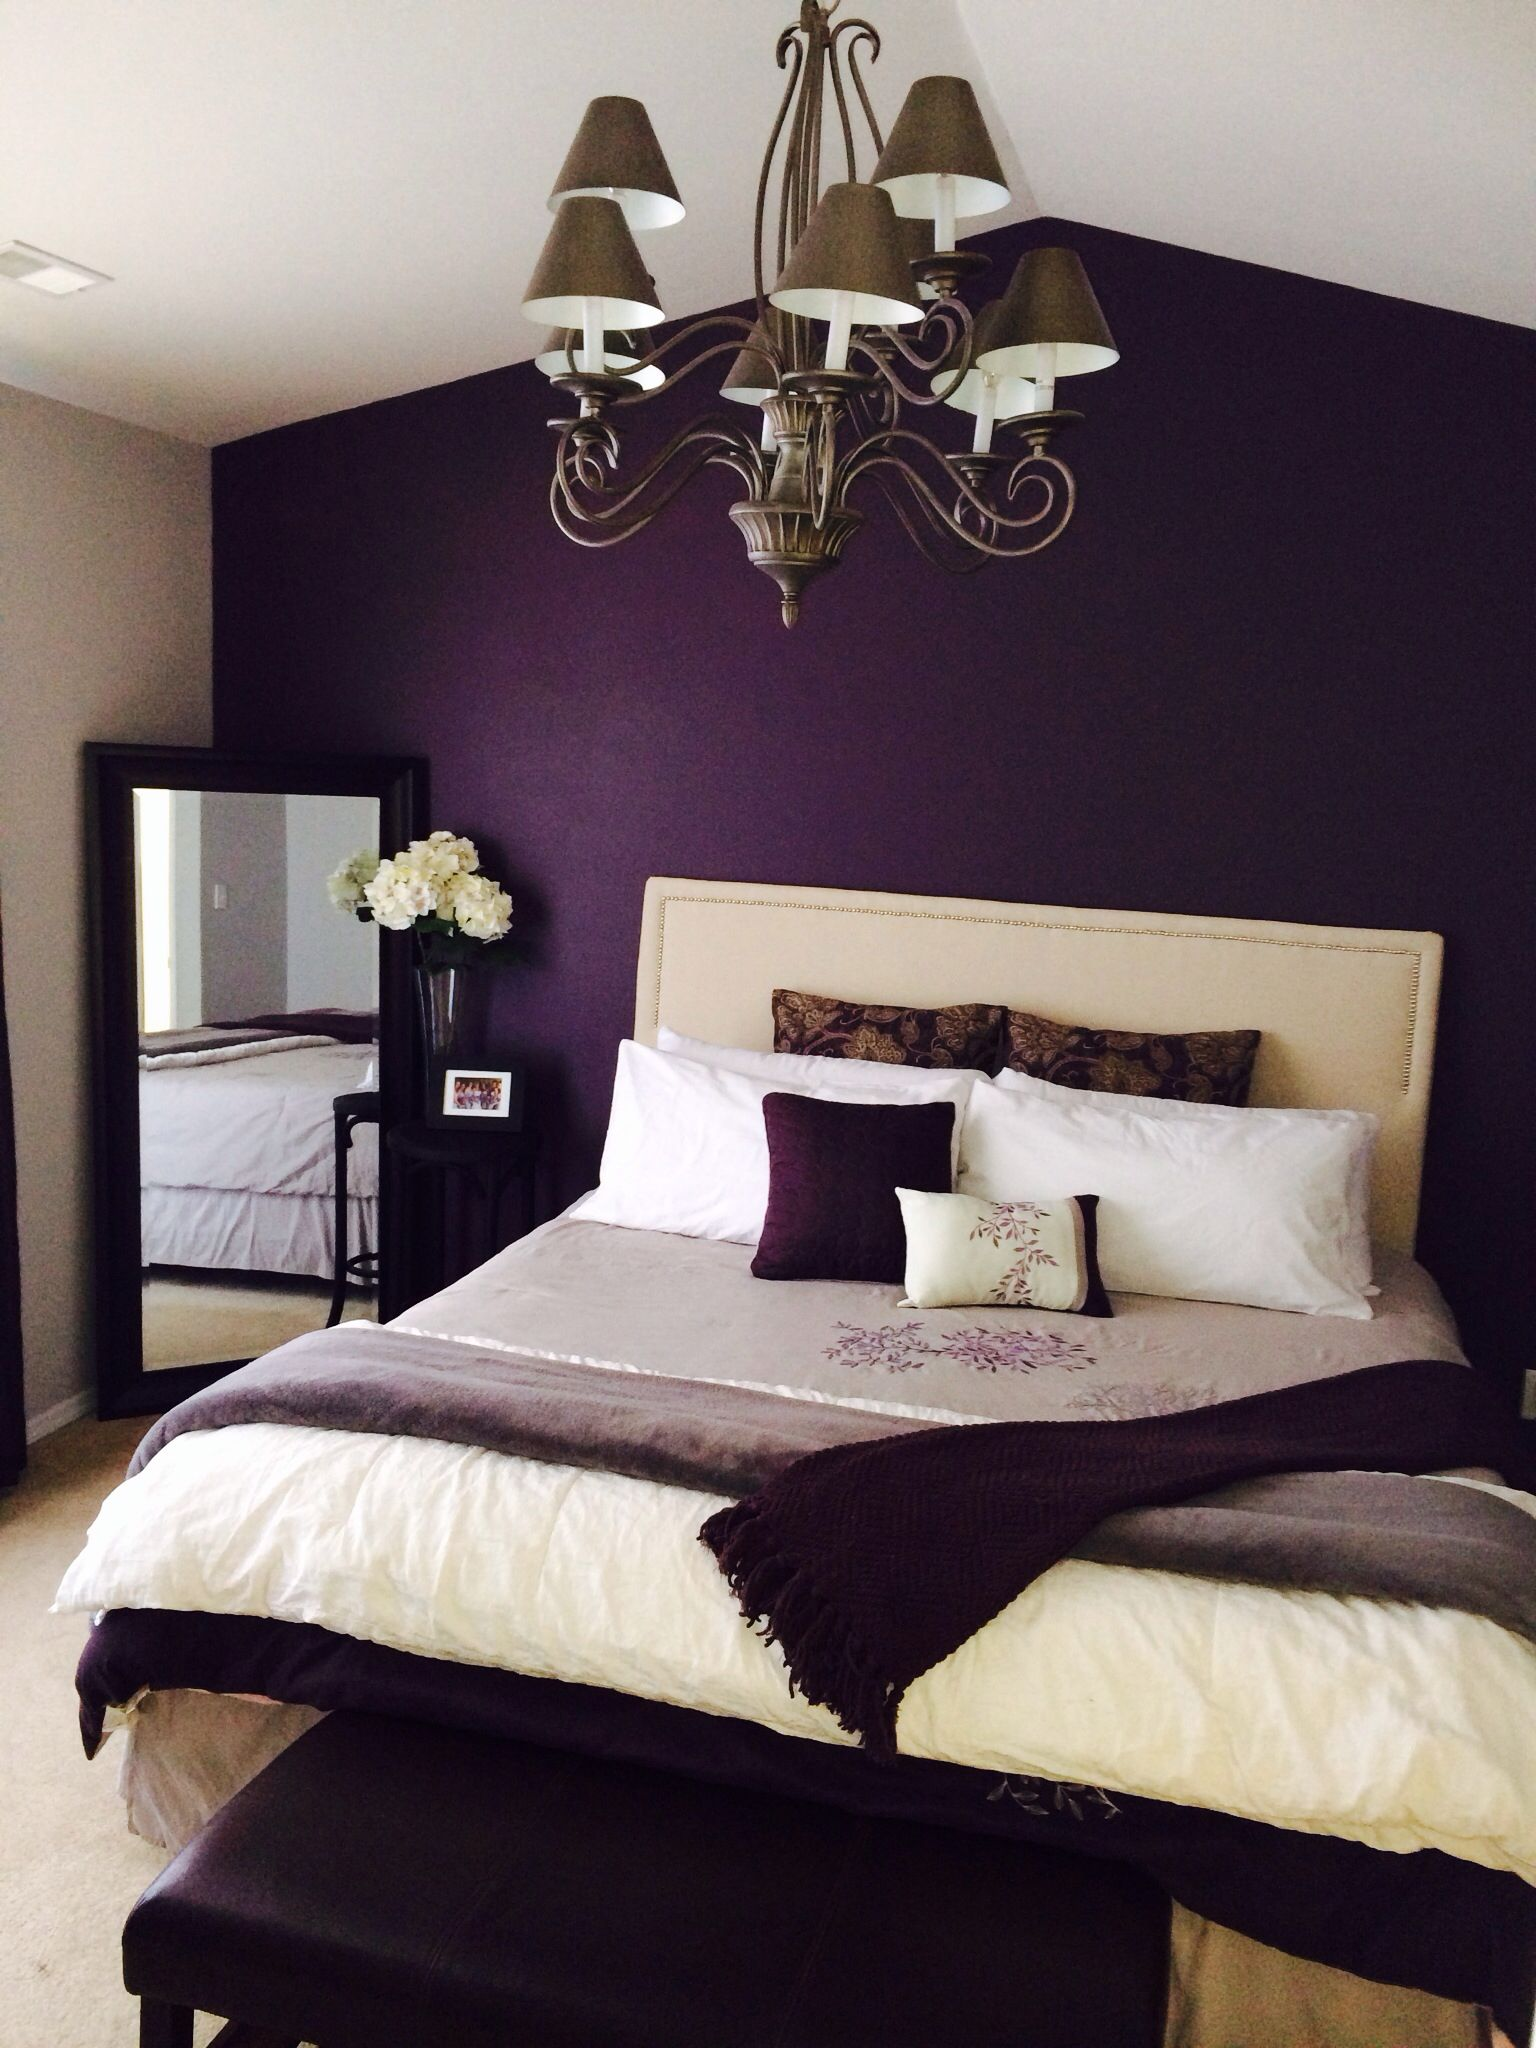 Black and purple bedroom - Bedrooms